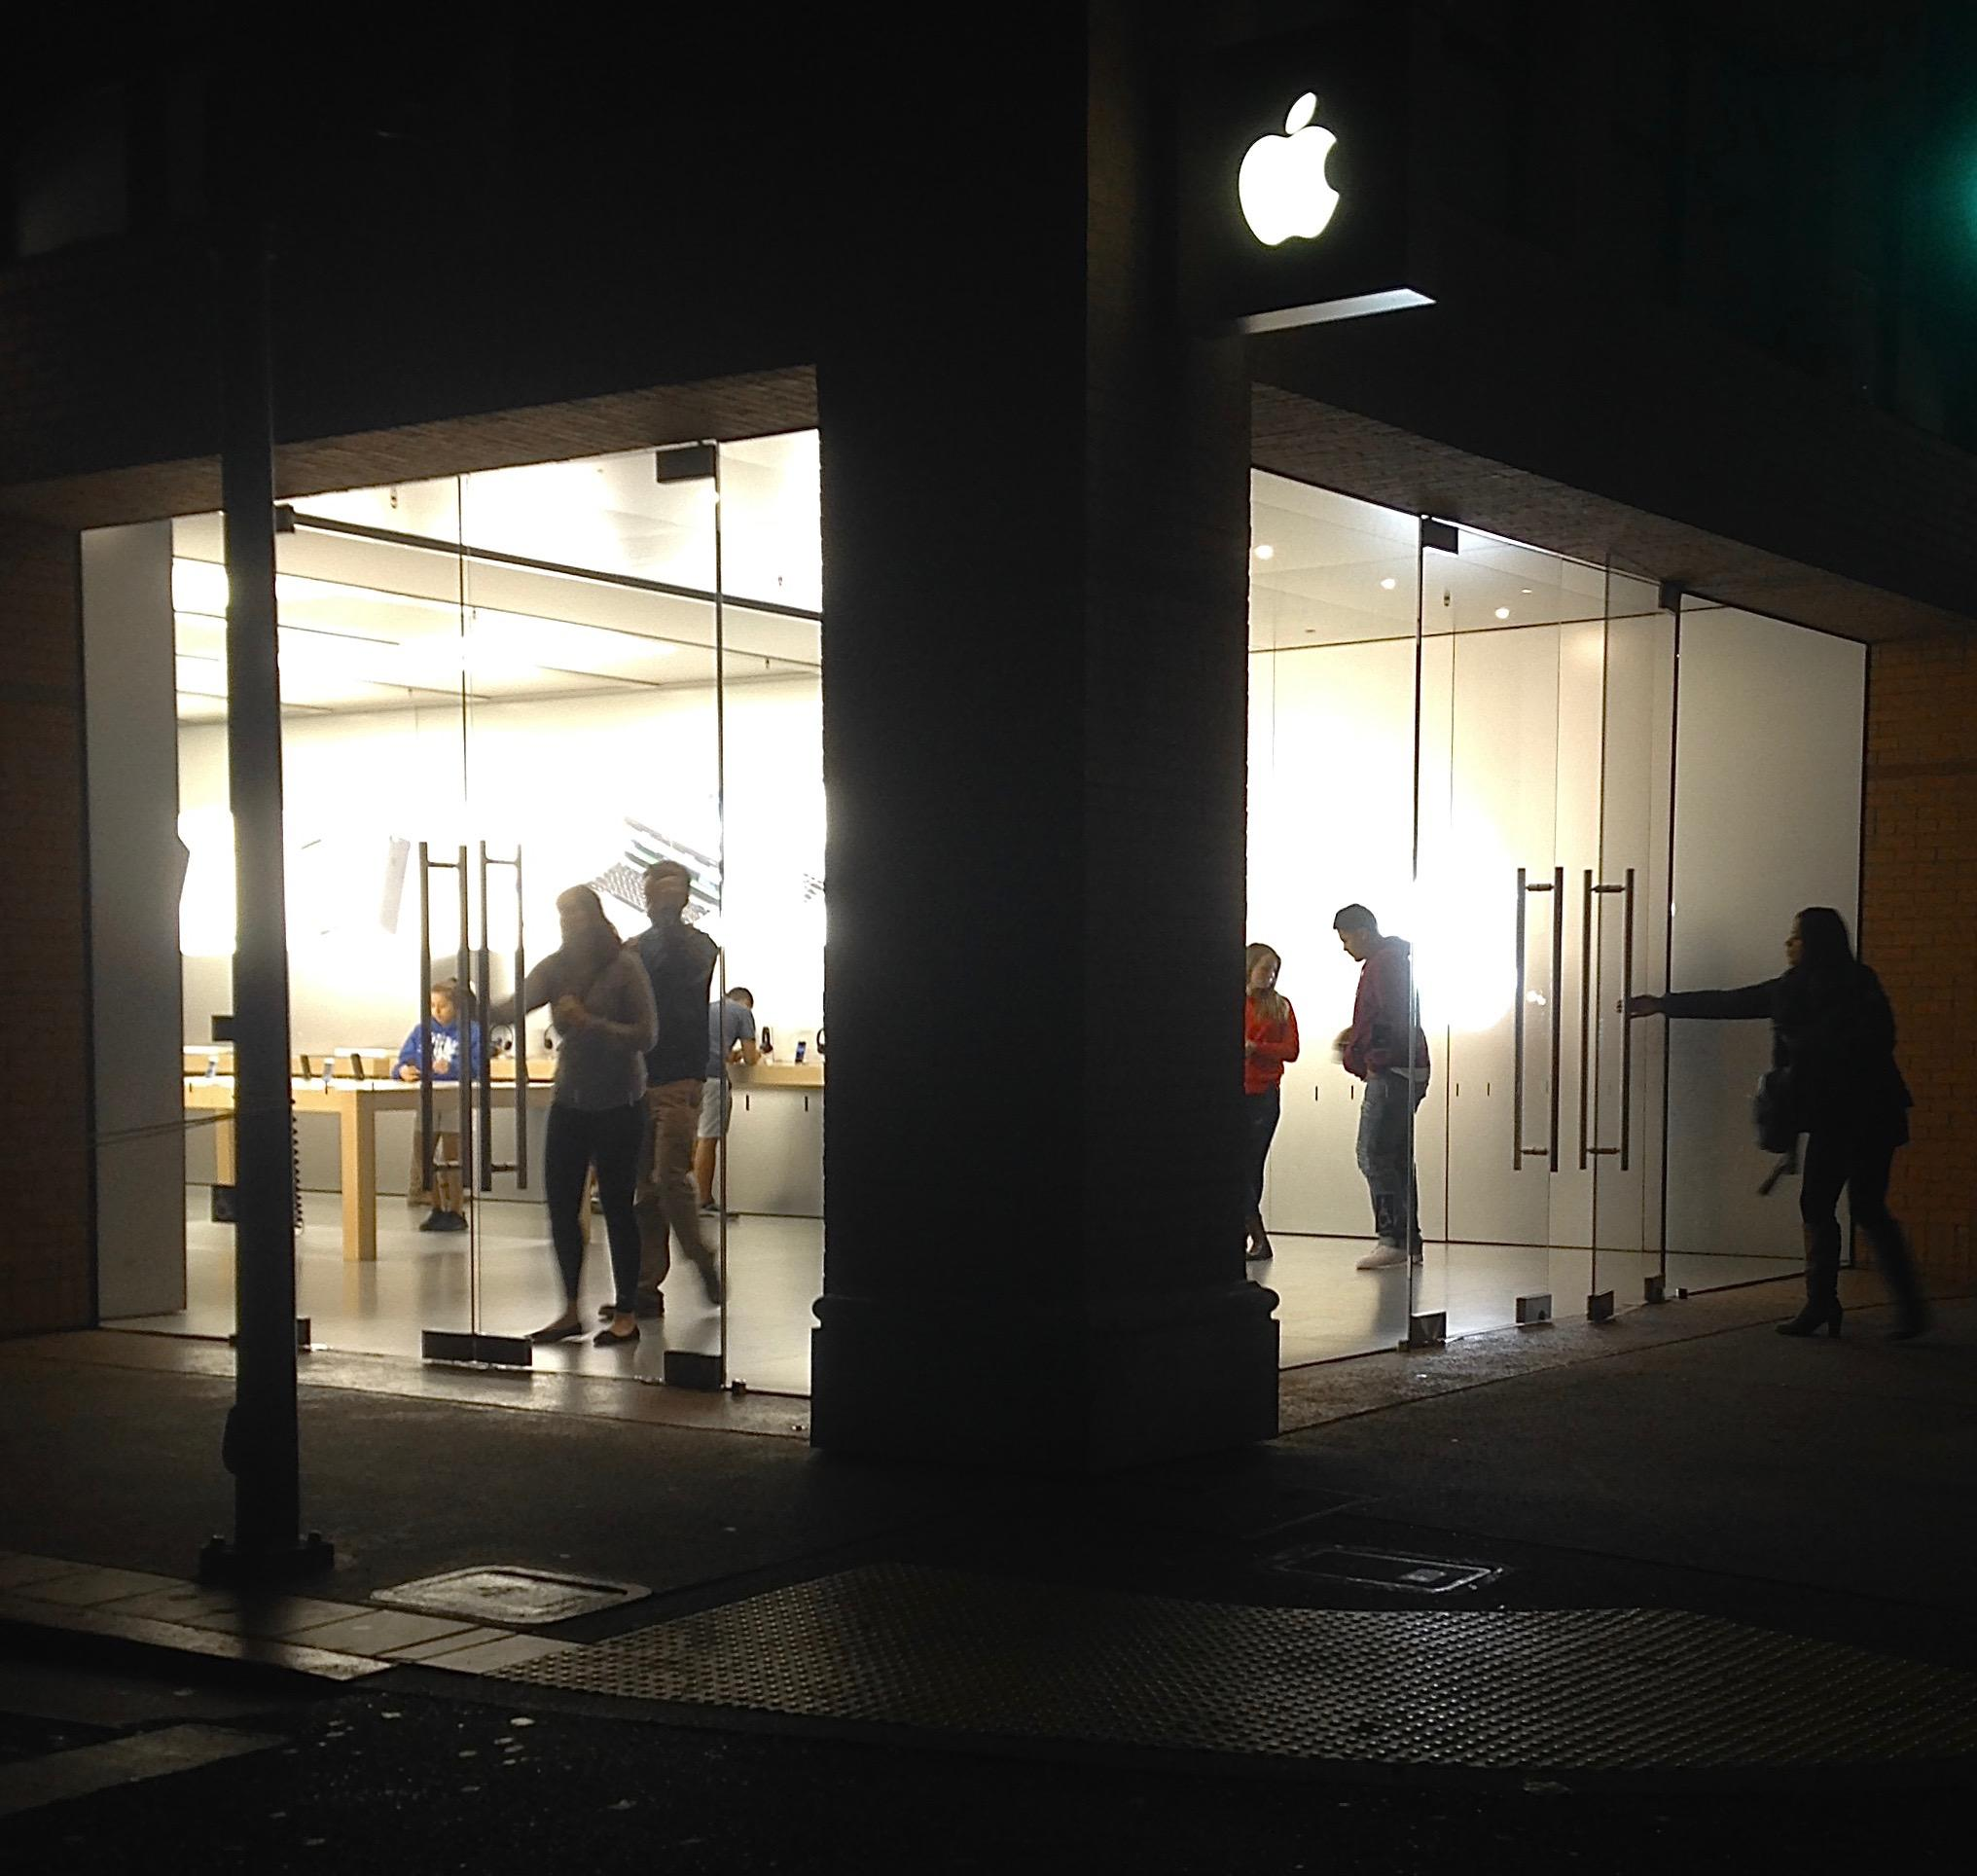 SLO police help lead investigation into Apple store robberies